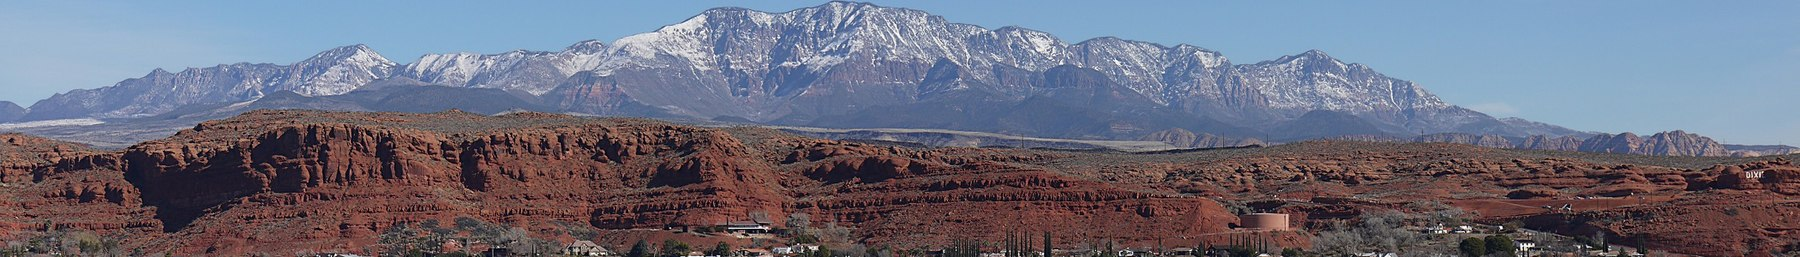 Pine Valley Mountains St George banner.jpg